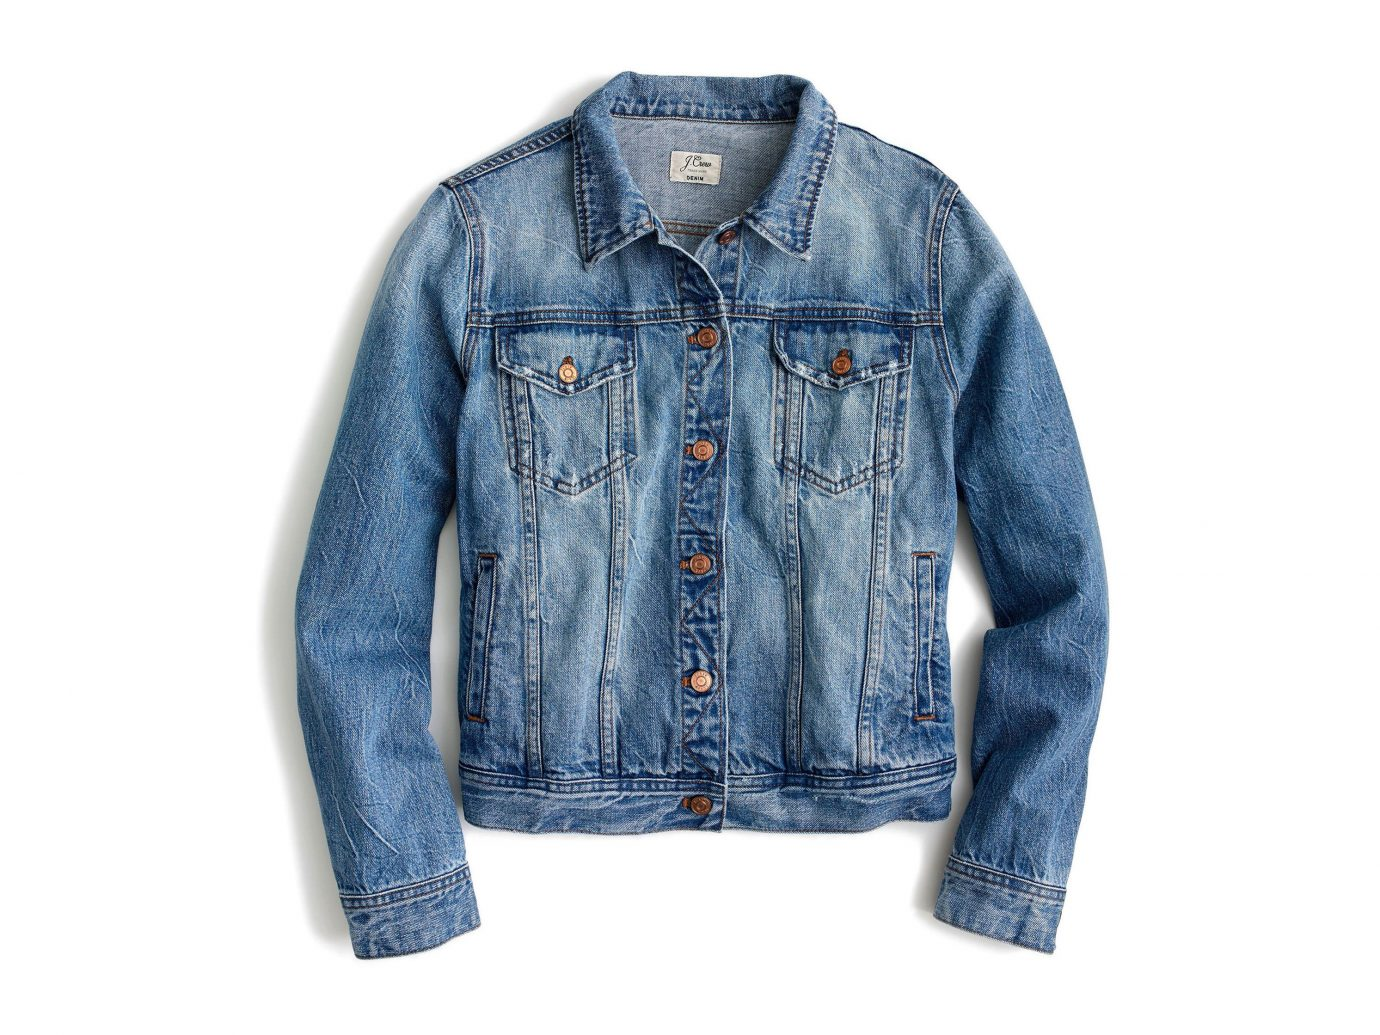 Style + Design Travel Shop clothing denim person jacket textile jeans material product sleeve pocket